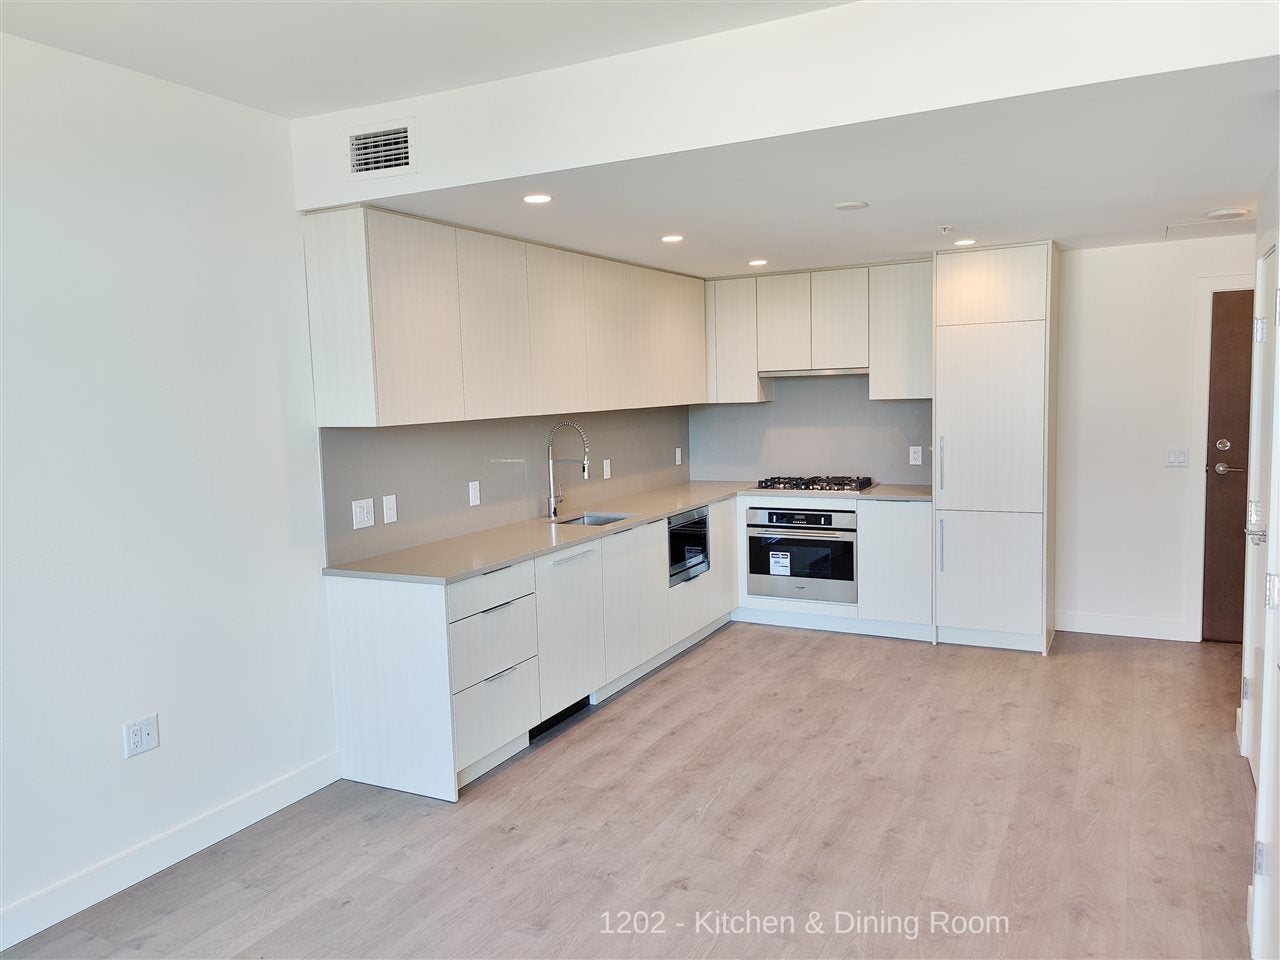 1202 4465 JUNEAU STREET - Brentwood Park Apartment/Condo for sale, 1 Bedroom (R2470011) - #9